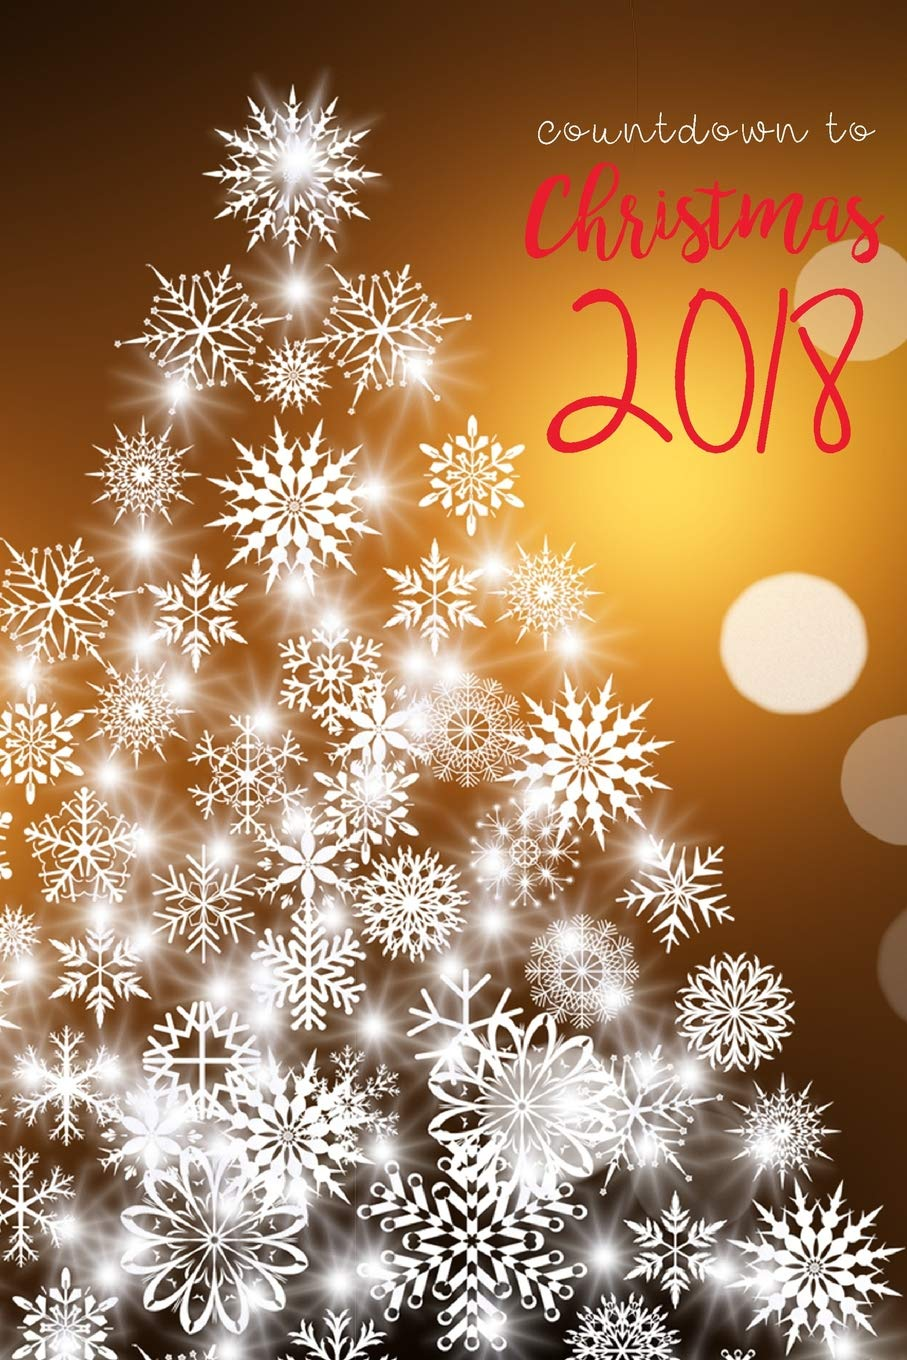 How Many Days Left For Christmas 2019.Countdown To Christmas From October 27 2018 To January 1